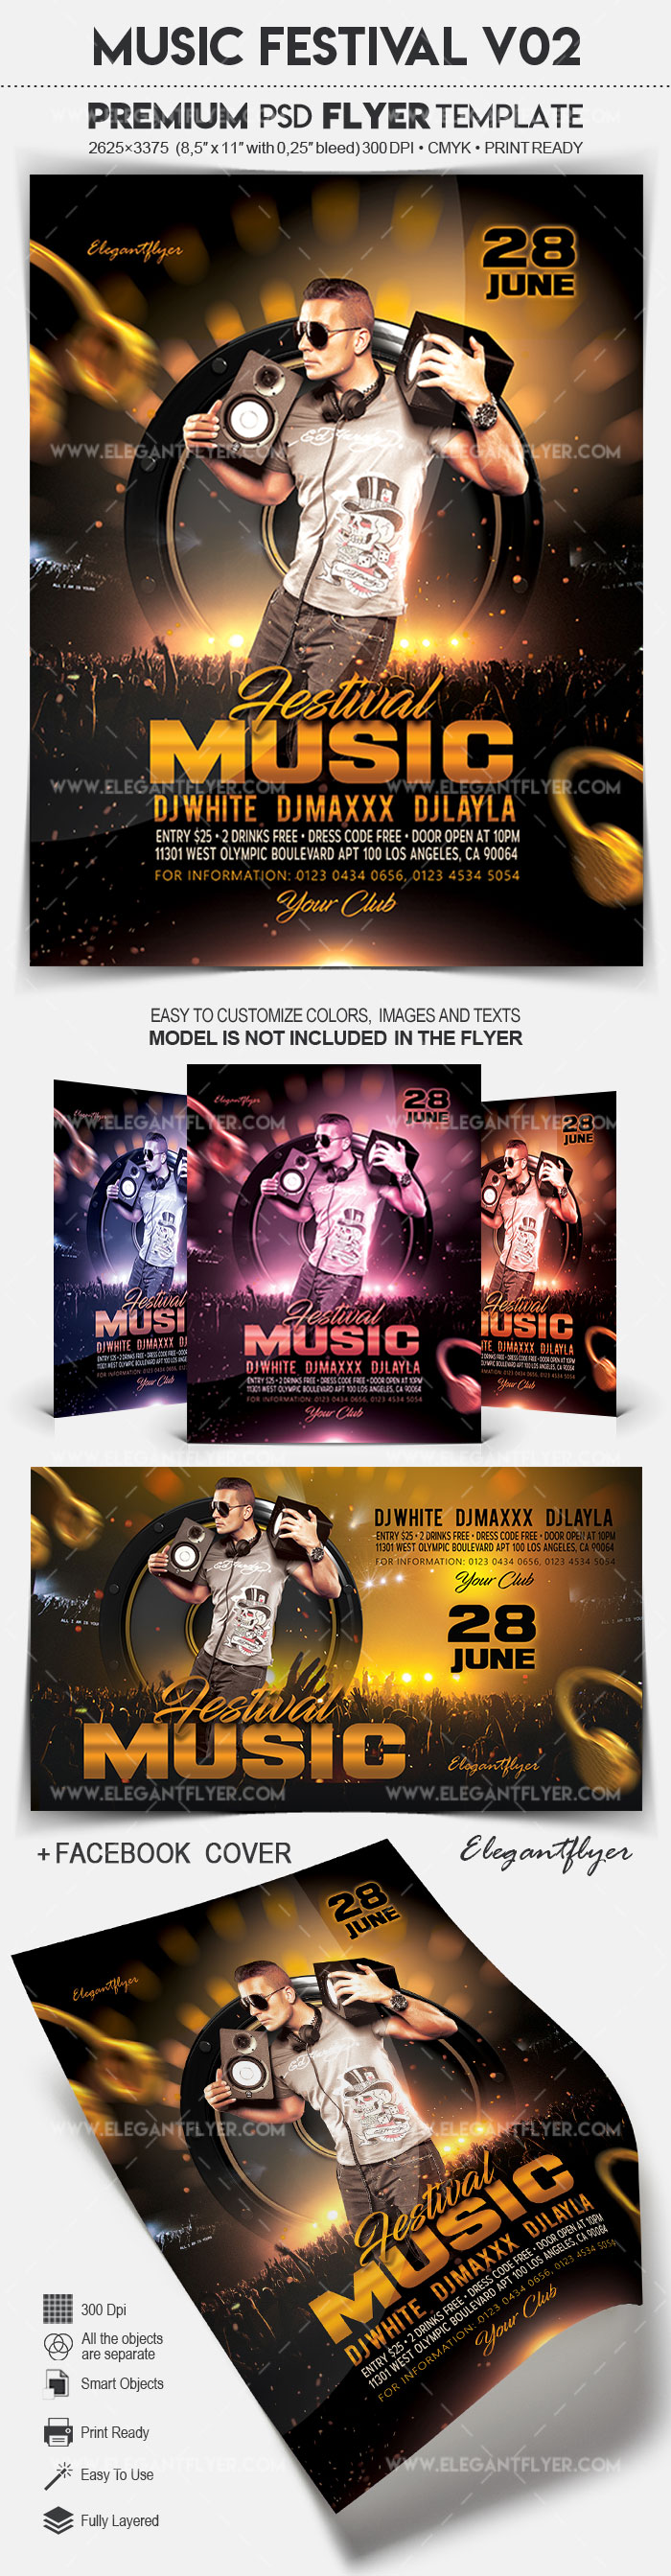 Music Festival V02 – Flyer PSD Template